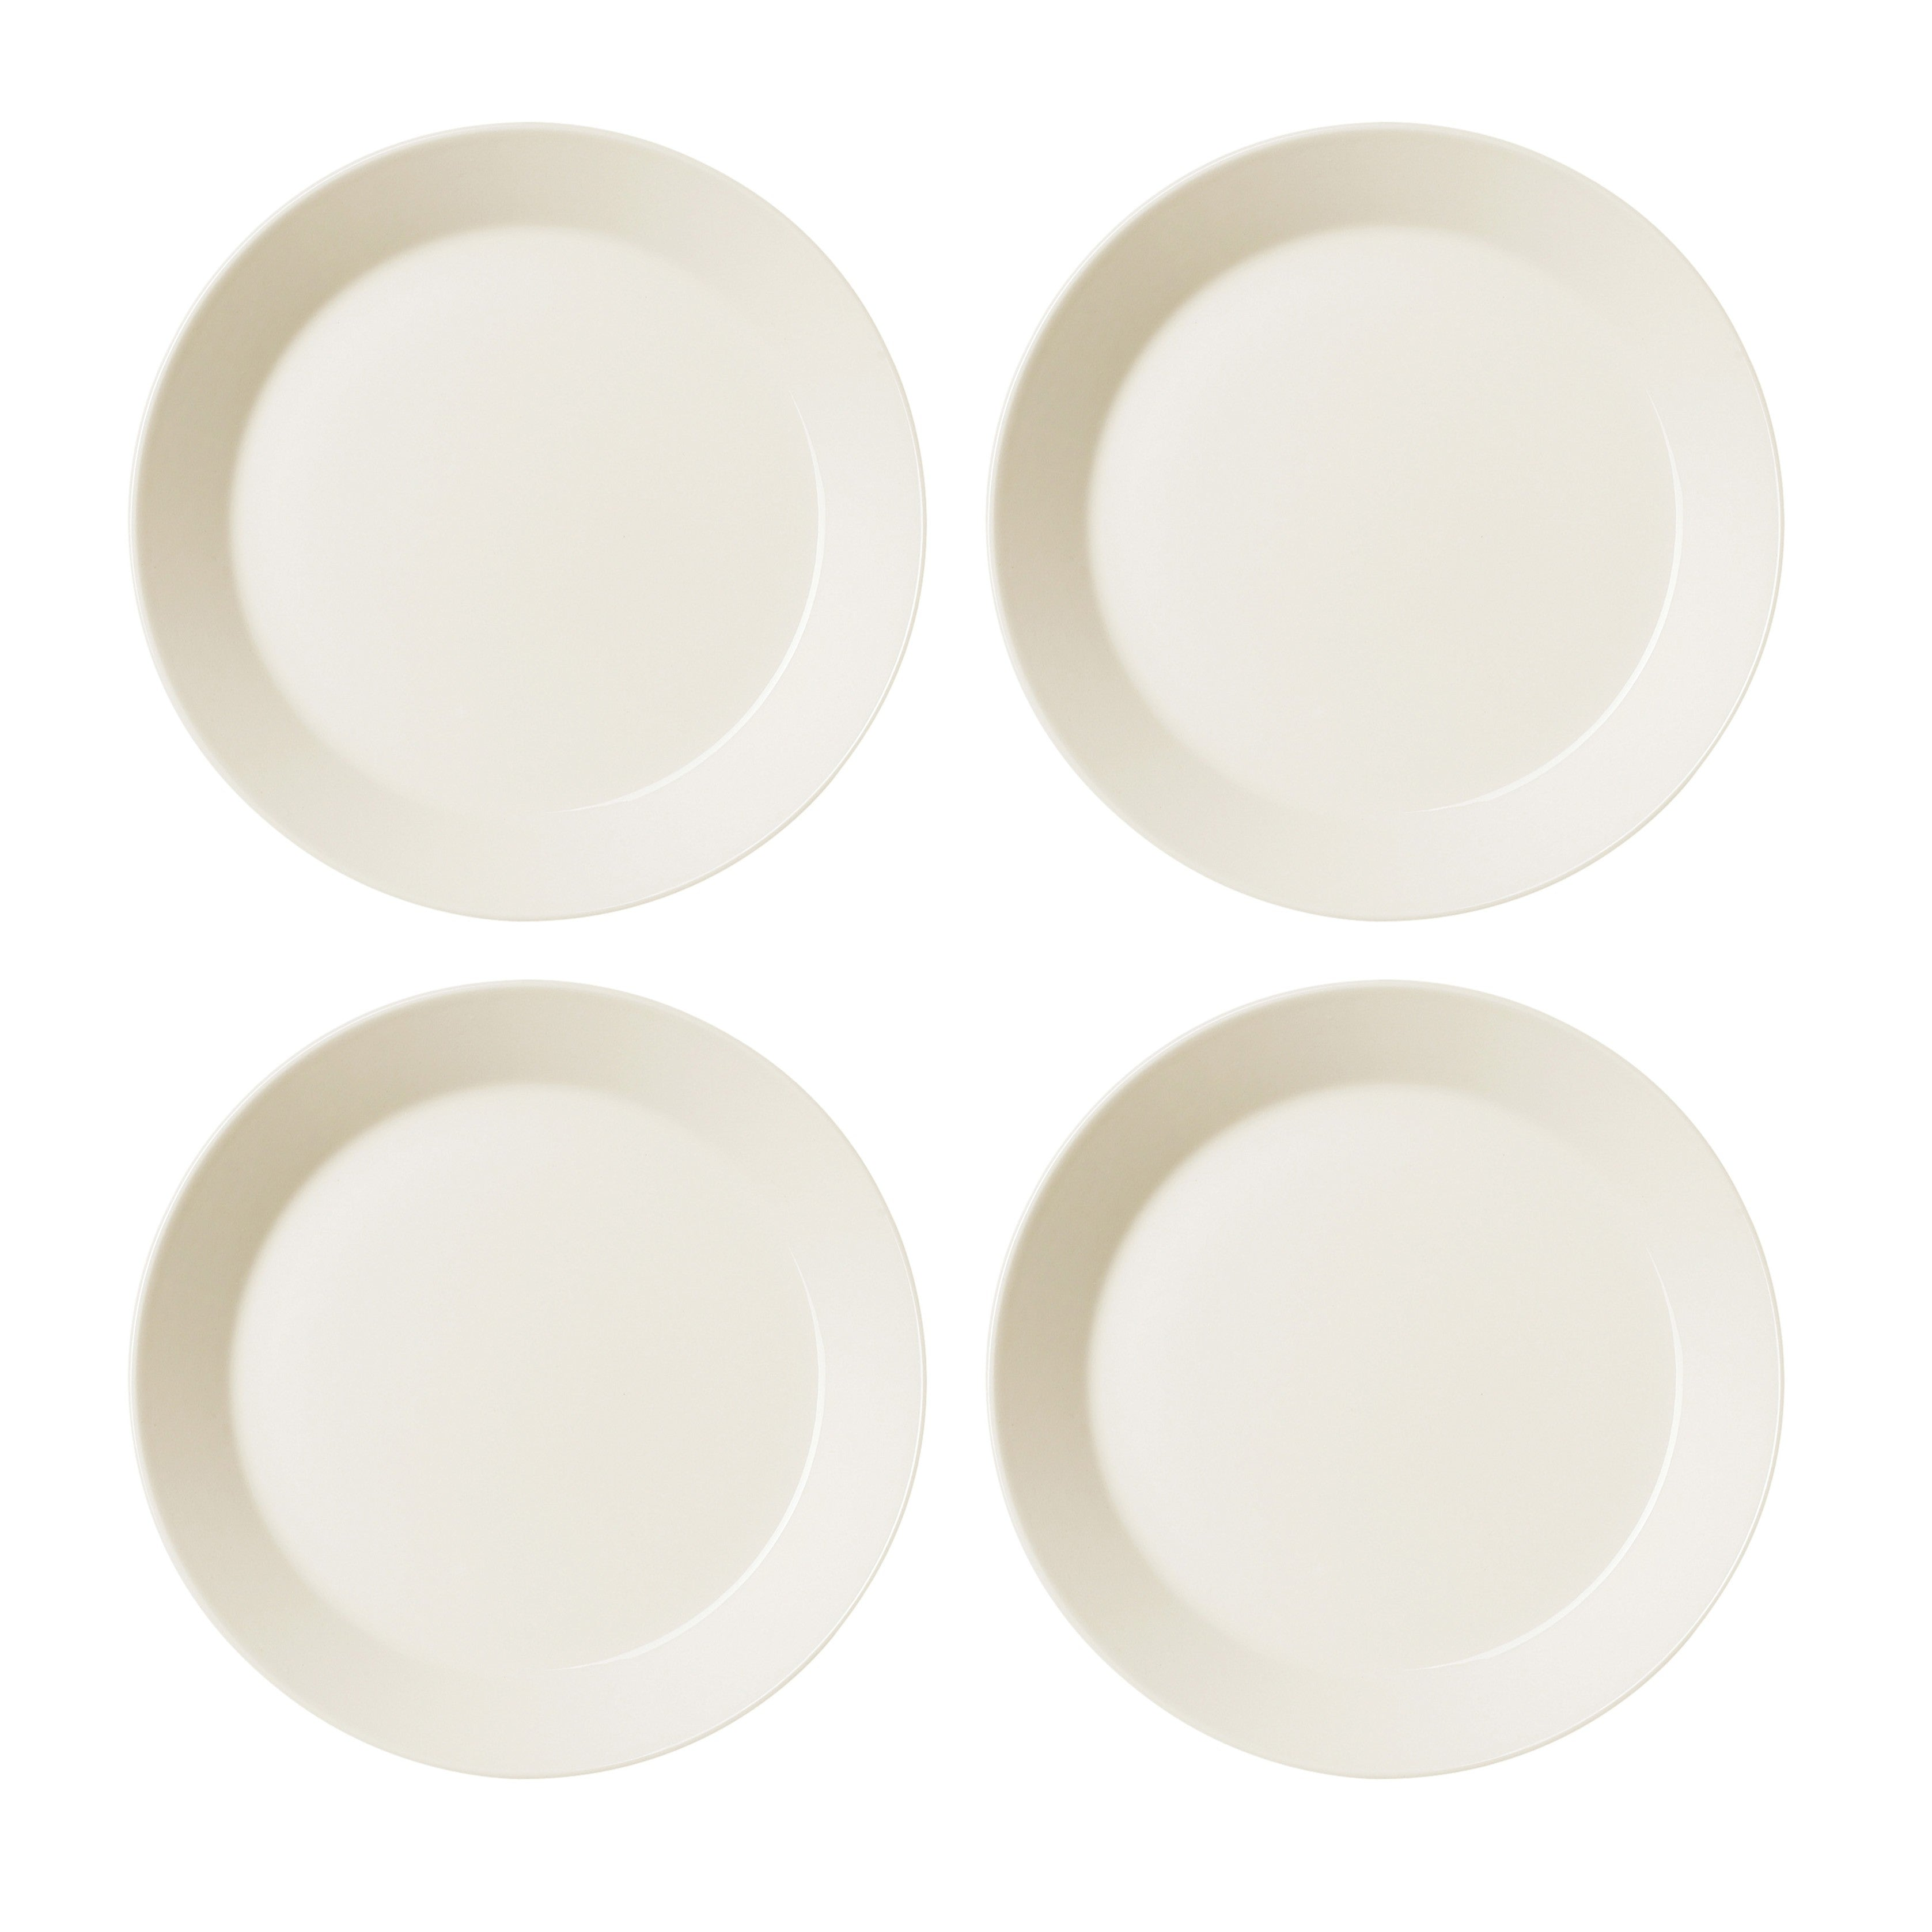 Teema Salad plate set 4 pcs